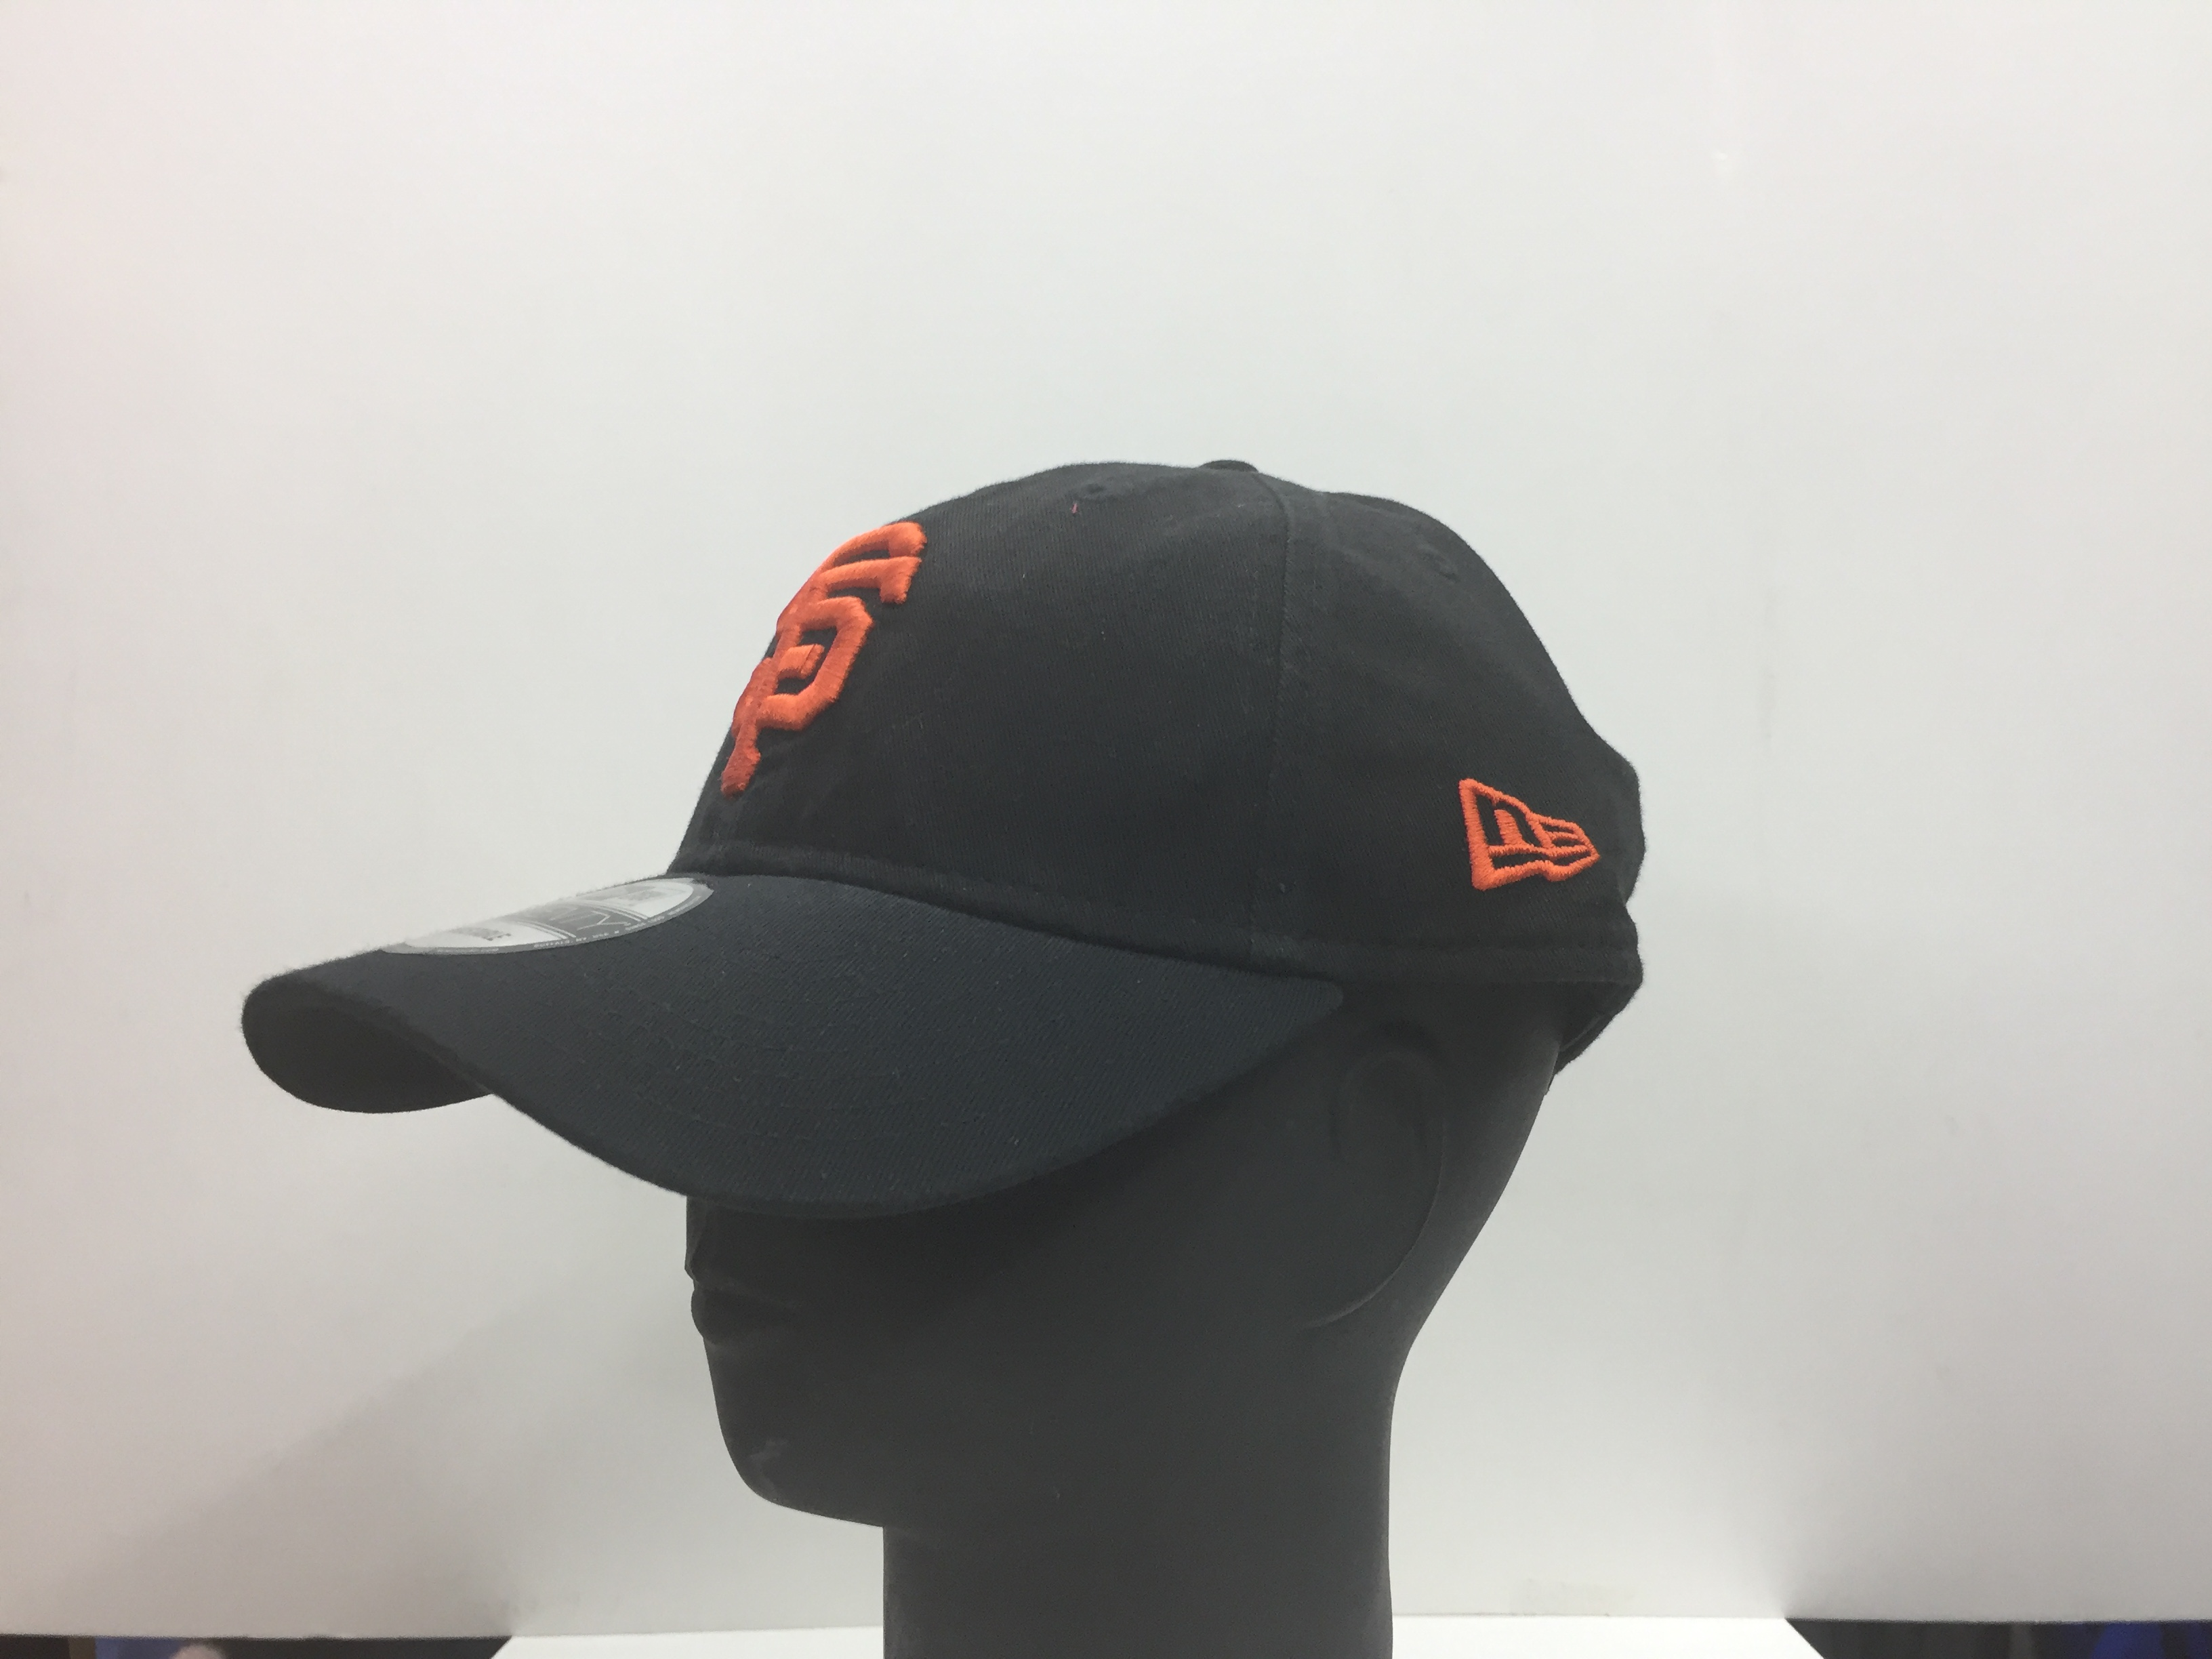 NEW ERA SAN FRANCISCO DAD HAT - Gorrilandia b7a7bac1b45